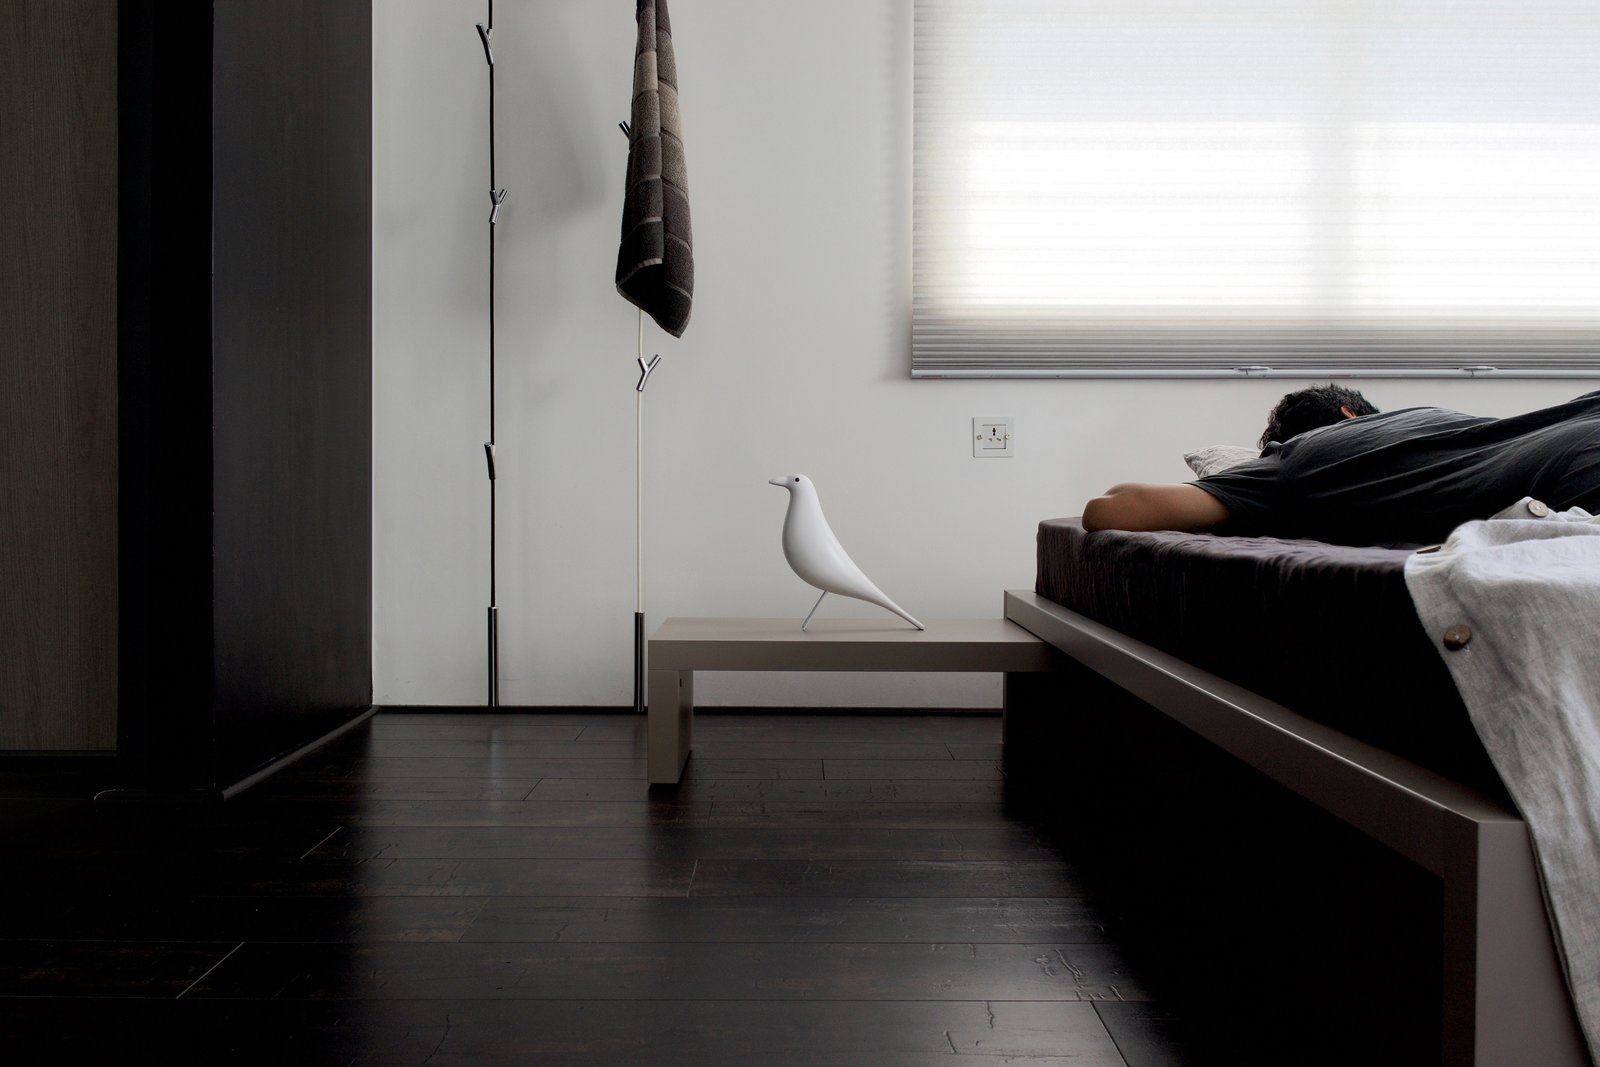 """Bedroom, Dark Hardwood Floor, and Bed """"I studied Product Design at National Institute of Design in India, which is often regarded as Eames school, founded by the designer couple Charles & Ray Eames. The space I wanted to live in wouldn't have been complete without a few of Eames' classics. Quite contrary to where one usually showcase the Eames bird on their shelves, it sits along my bedside waking me up to inspiring mornings every day"""".  Living in Monochrome, far away from Nordic lands by Nithin Ismail"""